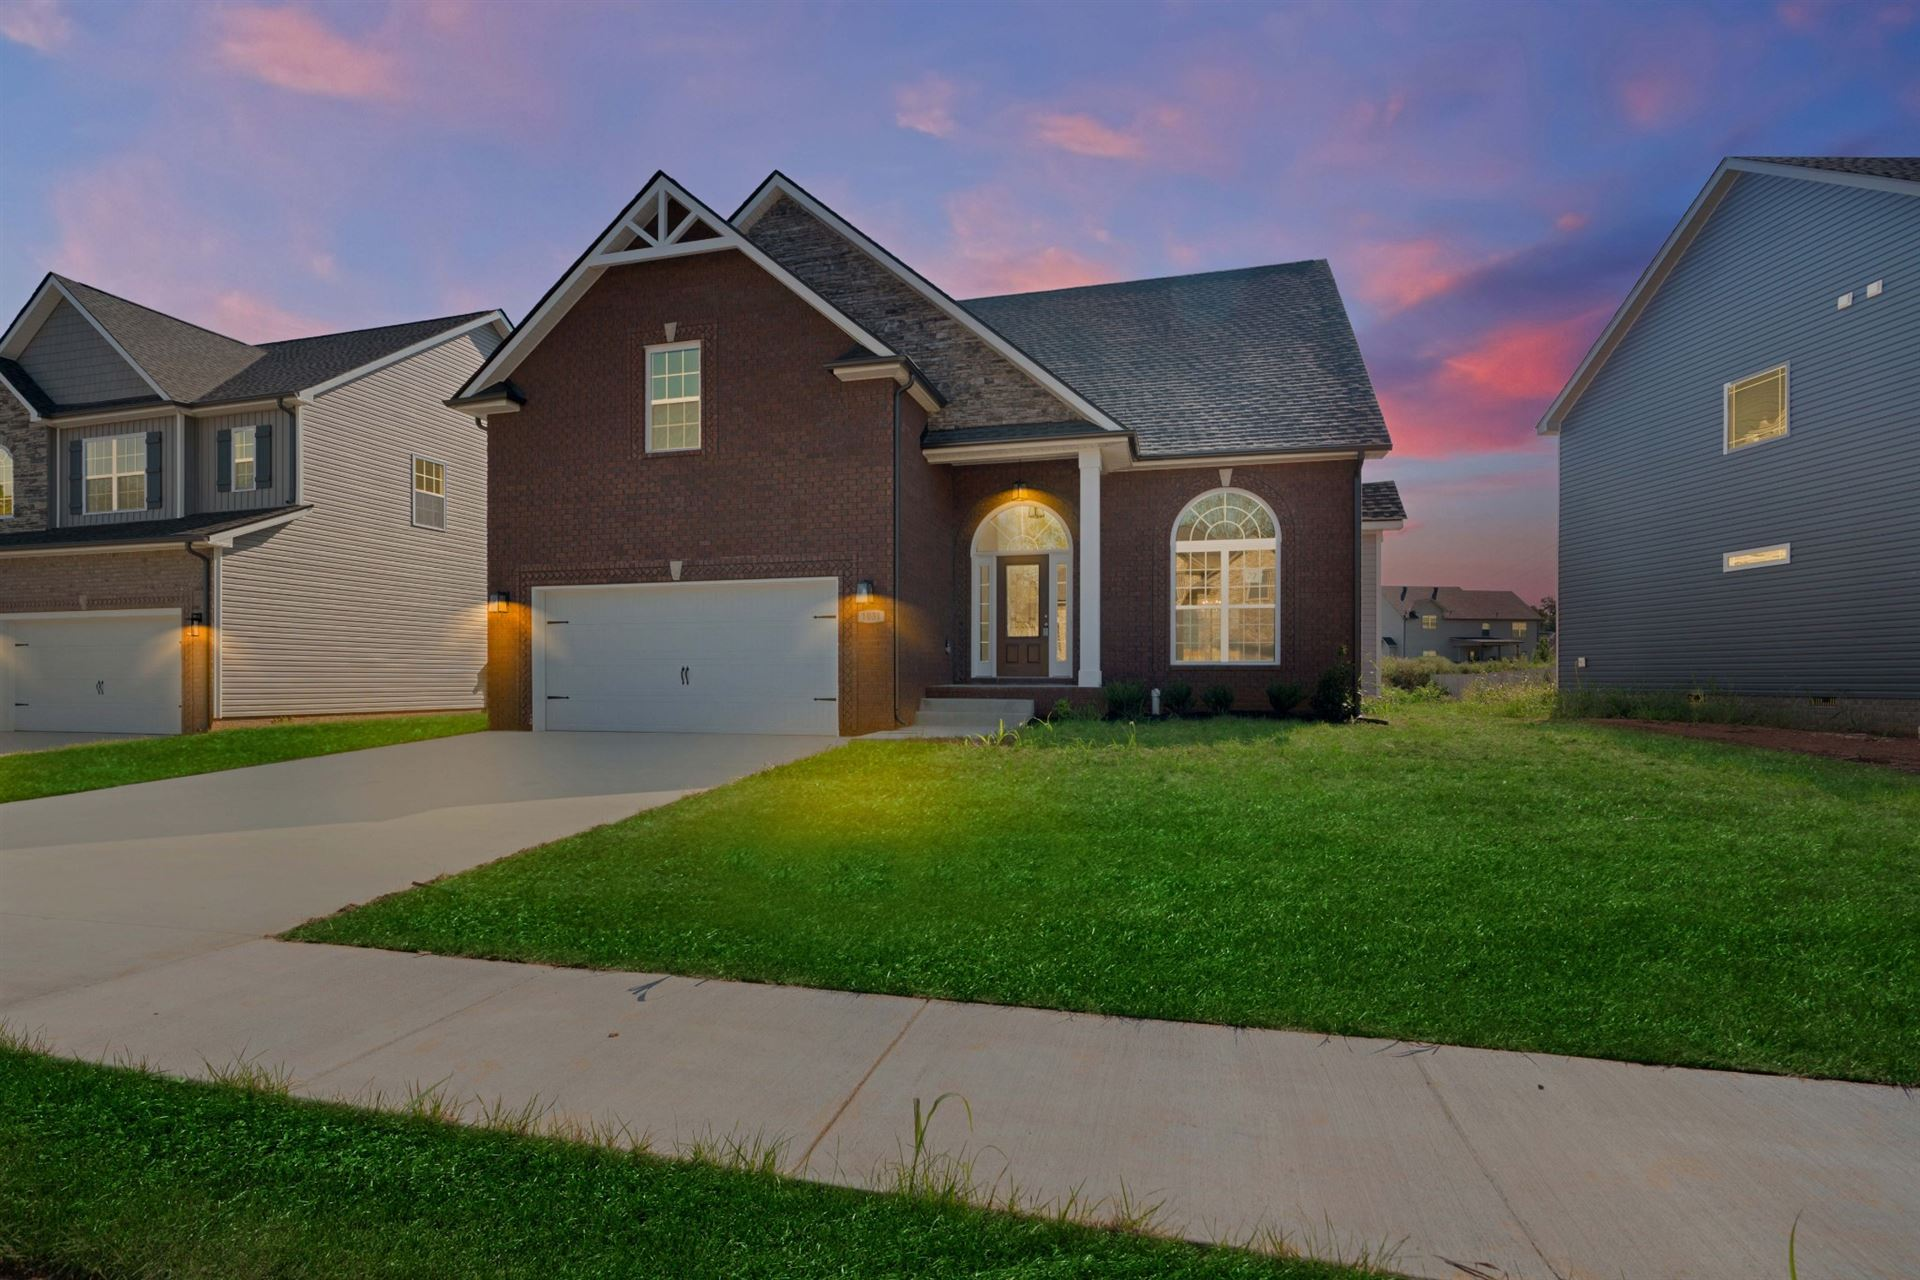 27 Griffey Estates, Clarksville, TN 37042 - MLS#: 2177846